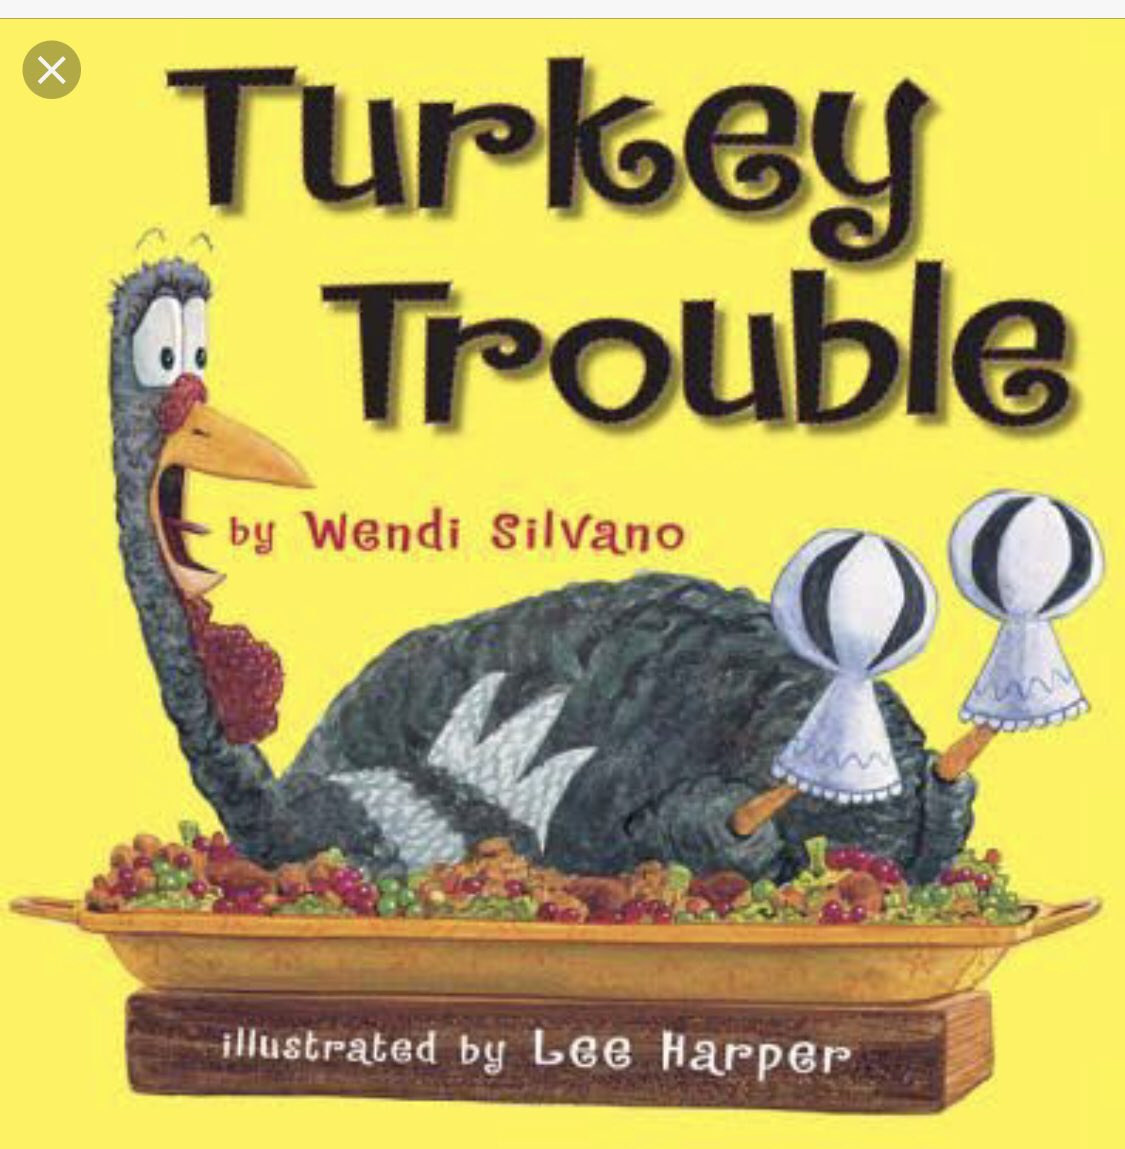 So thankful to be back with my <a target='_blank' href='http://twitter.com/BarcroftEagles'>@BarcroftEagles</a> in time to celebrate Thanksgiving. I missed the community so much. <a target='_blank' href='http://twitter.com/APSVirginia'>@APSVirginia</a> <a target='_blank' href='http://twitter.com/APSLibrarians'>@APSLibrarians</a> <a target='_blank' href='http://twitter.com/krumbiegelgirl'>@krumbiegelgirl</a> <a target='_blank' href='http://twitter.com/GabyRivasAPS'>@GabyRivasAPS</a> <a target='_blank' href='http://twitter.com/BarcroftSoars'>@BarcroftSoars</a> <a target='_blank' href='http://twitter.com/teachnpe'>@teachnpe</a> <a target='_blank' href='http://twitter.com/missspohn'>@missspohn</a> <a target='_blank' href='http://twitter.com/TheNinjaLawyer'>@TheNinjaLawyer</a> <a target='_blank' href='http://twitter.com/Cornacchio4th'>@Cornacchio4th</a> <a target='_blank' href='https://t.co/0jhlqFjop9'>https://t.co/0jhlqFjop9</a>